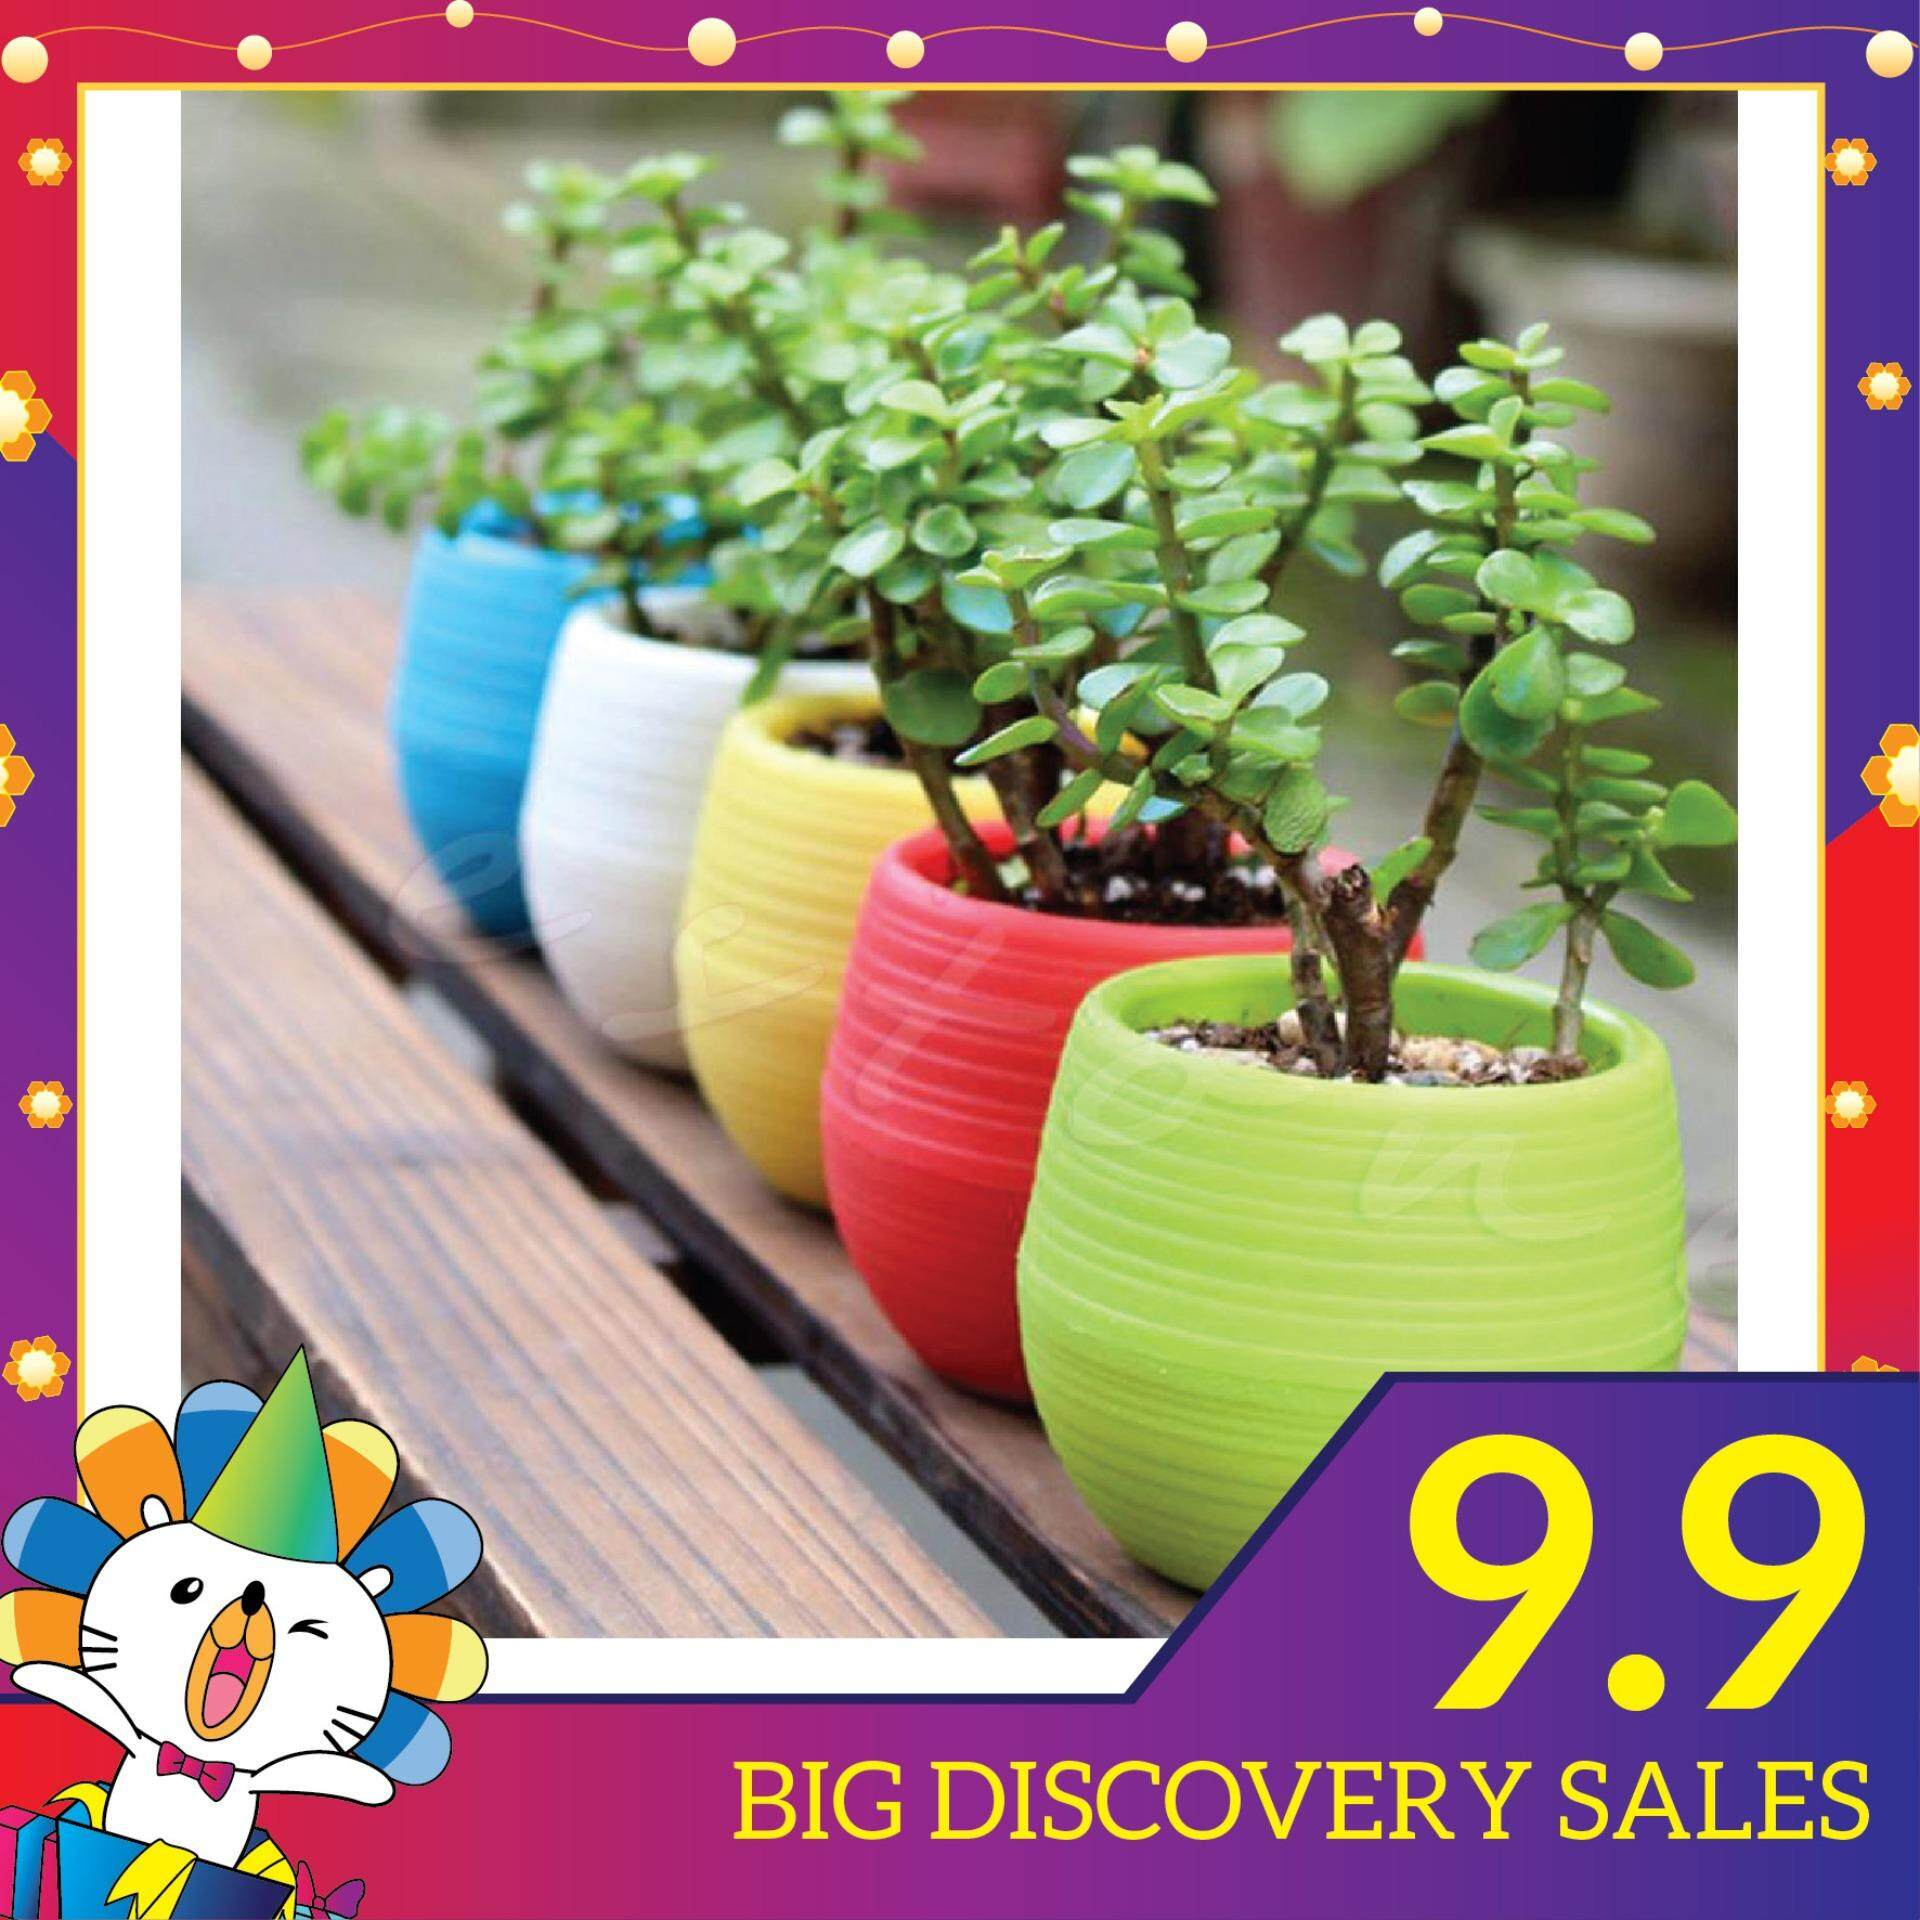 Colourful Mini Plastic Flower Pot Succulent Plant Flowerpot Home Office Decor